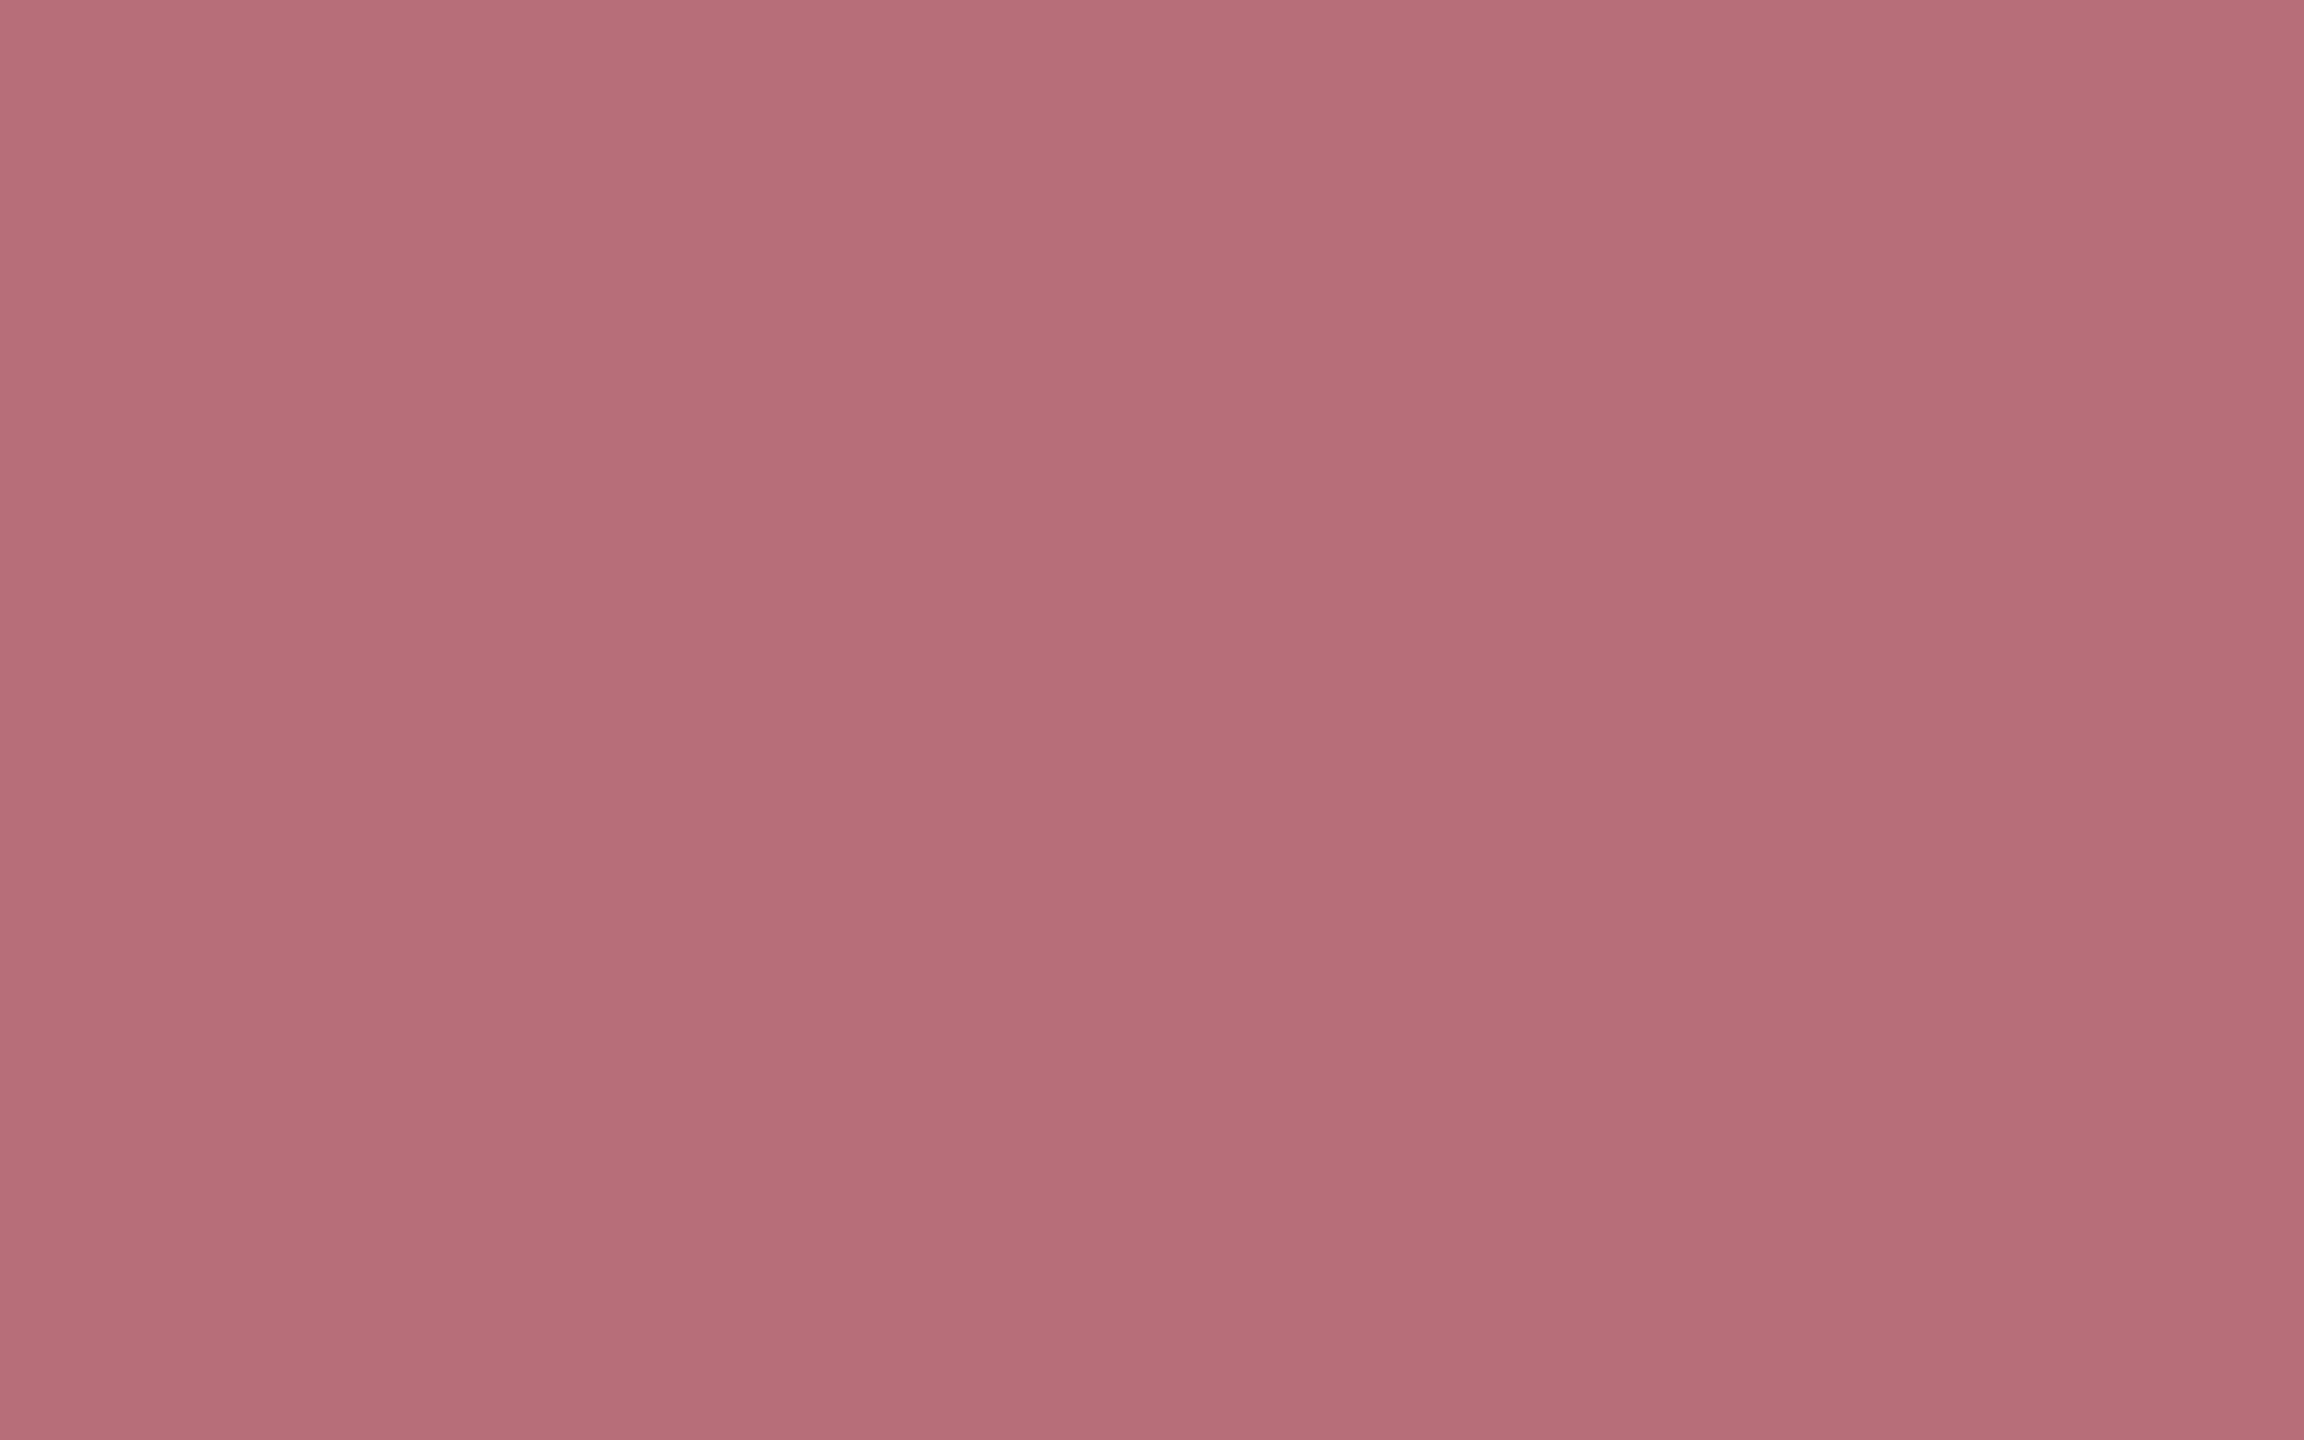 2304x1440 Rose Gold Solid Color Background